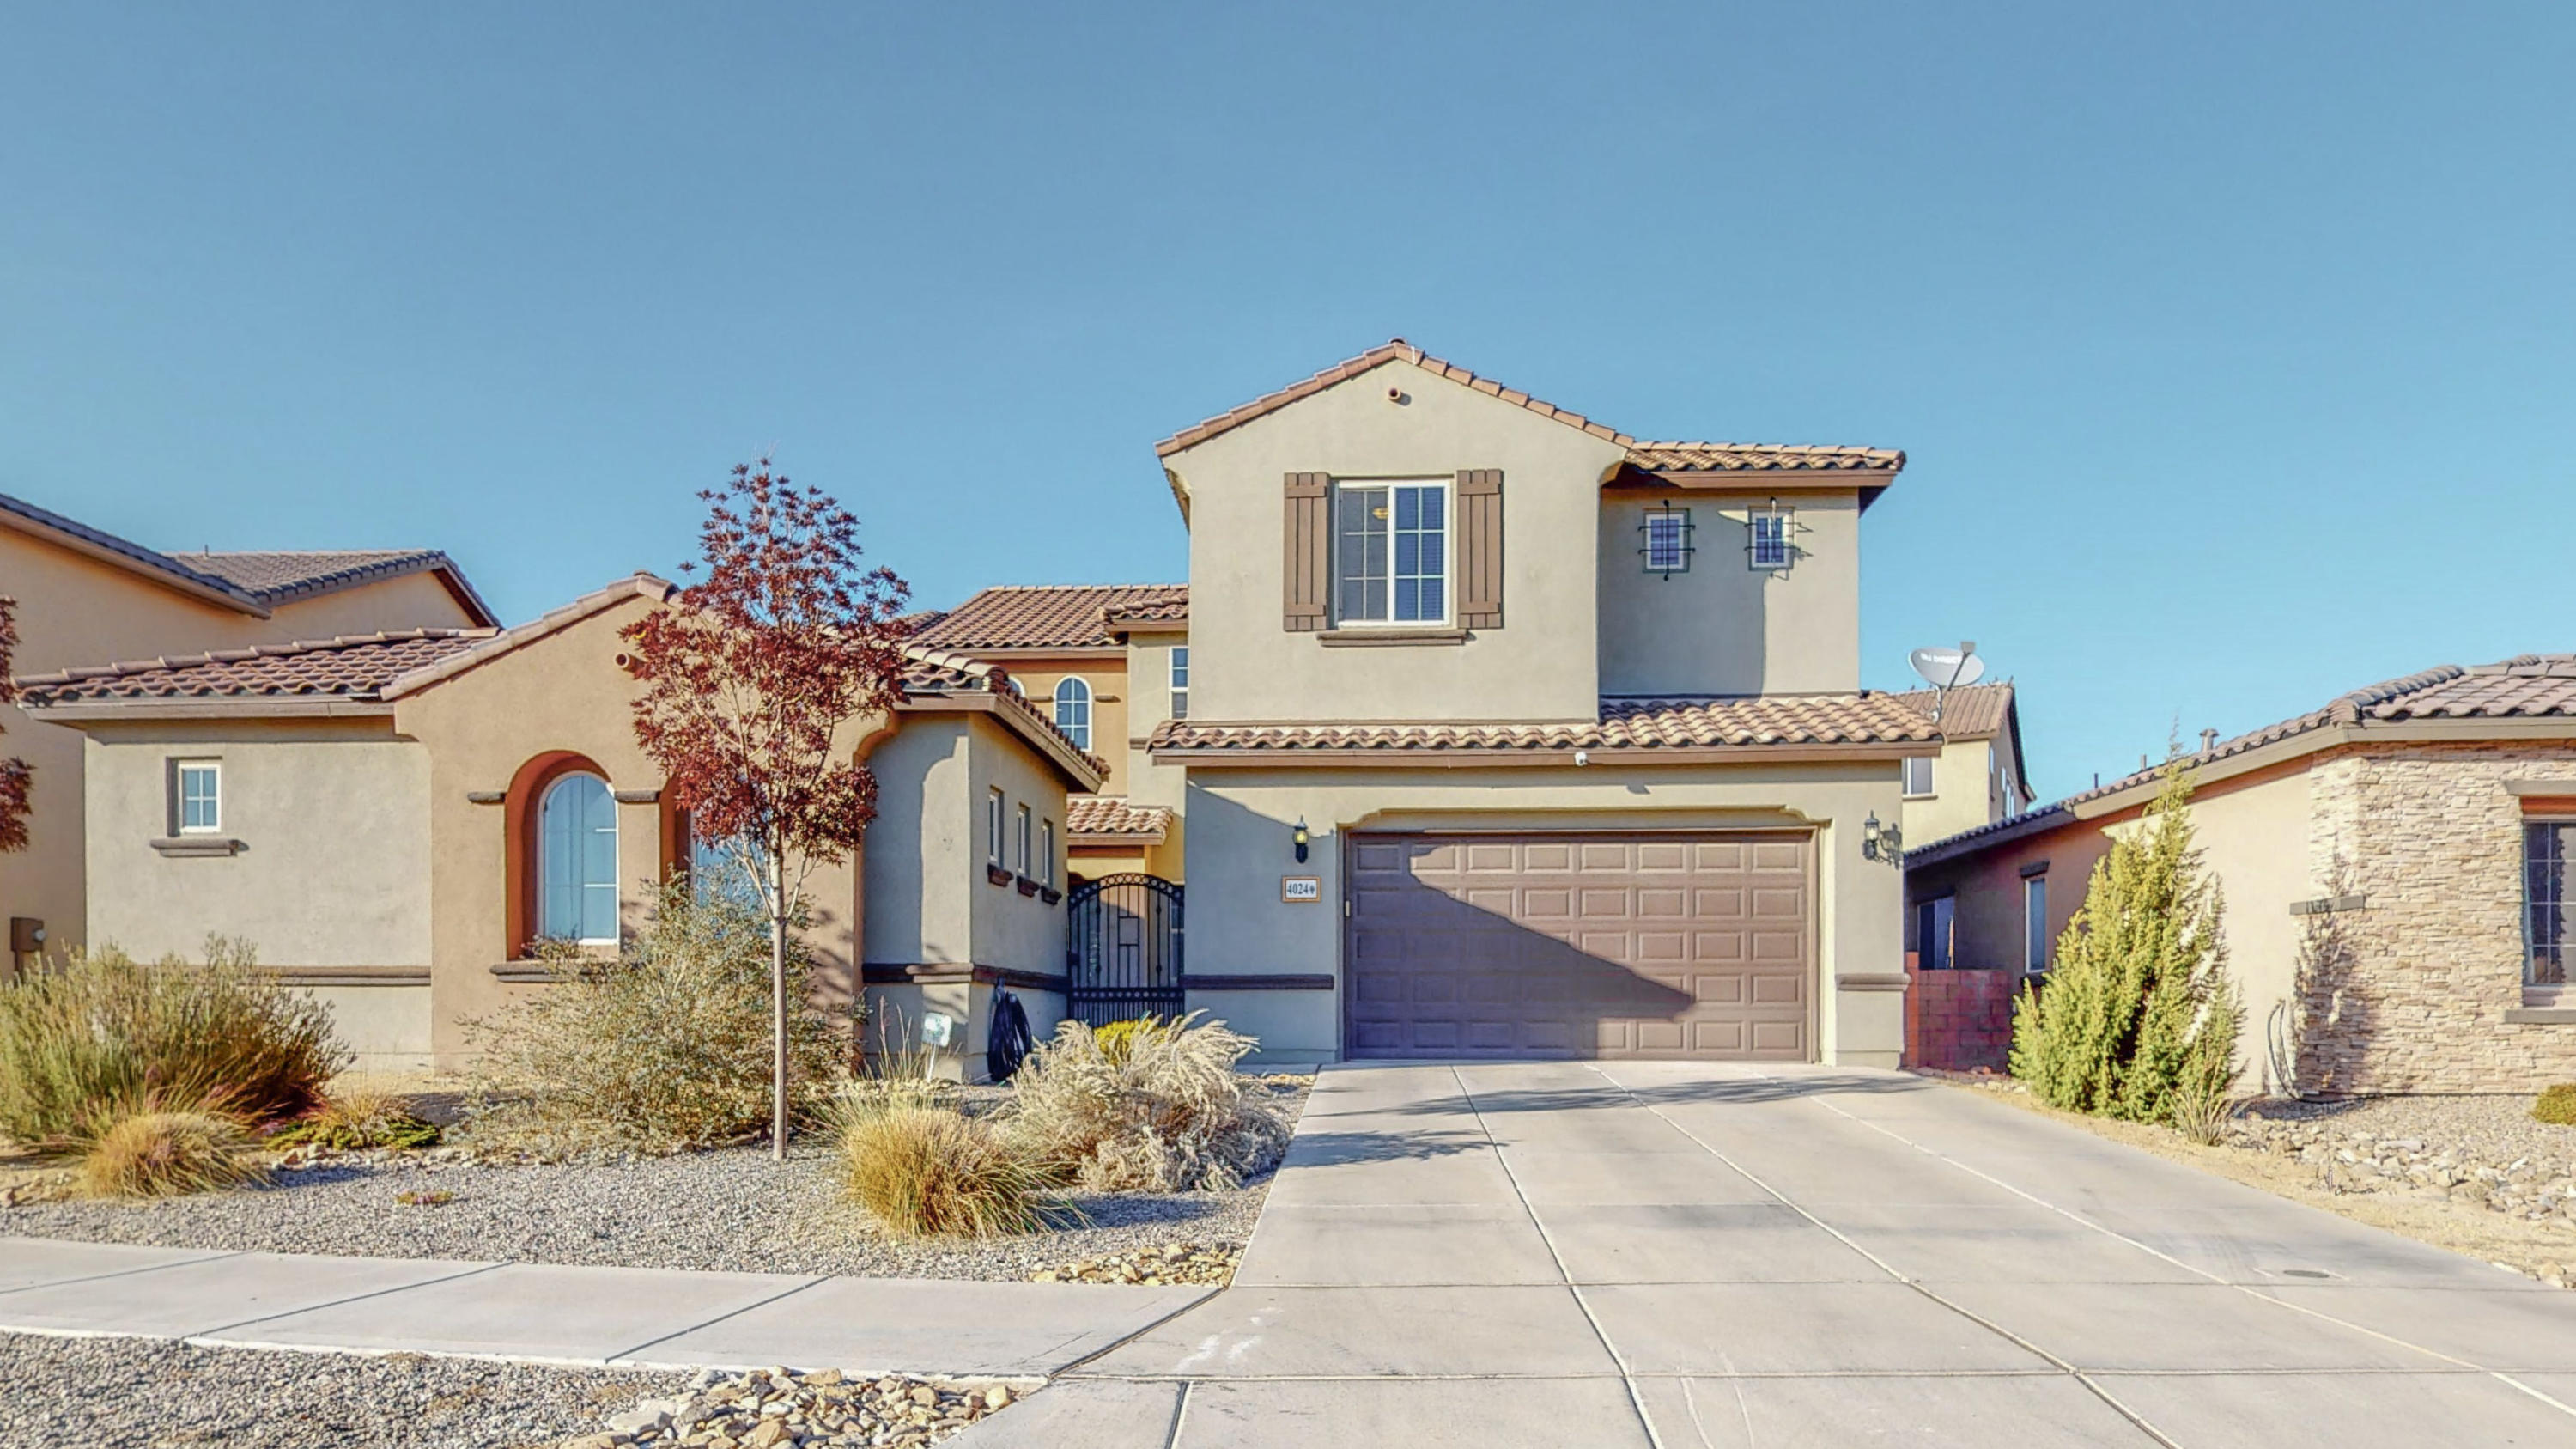 Beautiful, 5/6 bedroom home in gated Loma Colorado bursting with phenomenal amenities! From the front courtyard, with cozy outdoor living, step into this immaculate home with cathedral ceilings, flooded with natural light from the massive picture and clerestory windows. With open floor plan, the spacious living room flows into the massive kitchen, featuring high-end stainless appliances and enormous island, primed for entertaining. The master suite features two large walk-in closets on top of double sinks, garden tub, and expansive shower. Upstairs, a generous loft/family room sits with 2 bedrooms on either side, one of which features a private en-suite bathroom. Don't miss the luxurious backyard with private pool, hot tub, and fire pit; the tandem 3-car garage, and so much more!